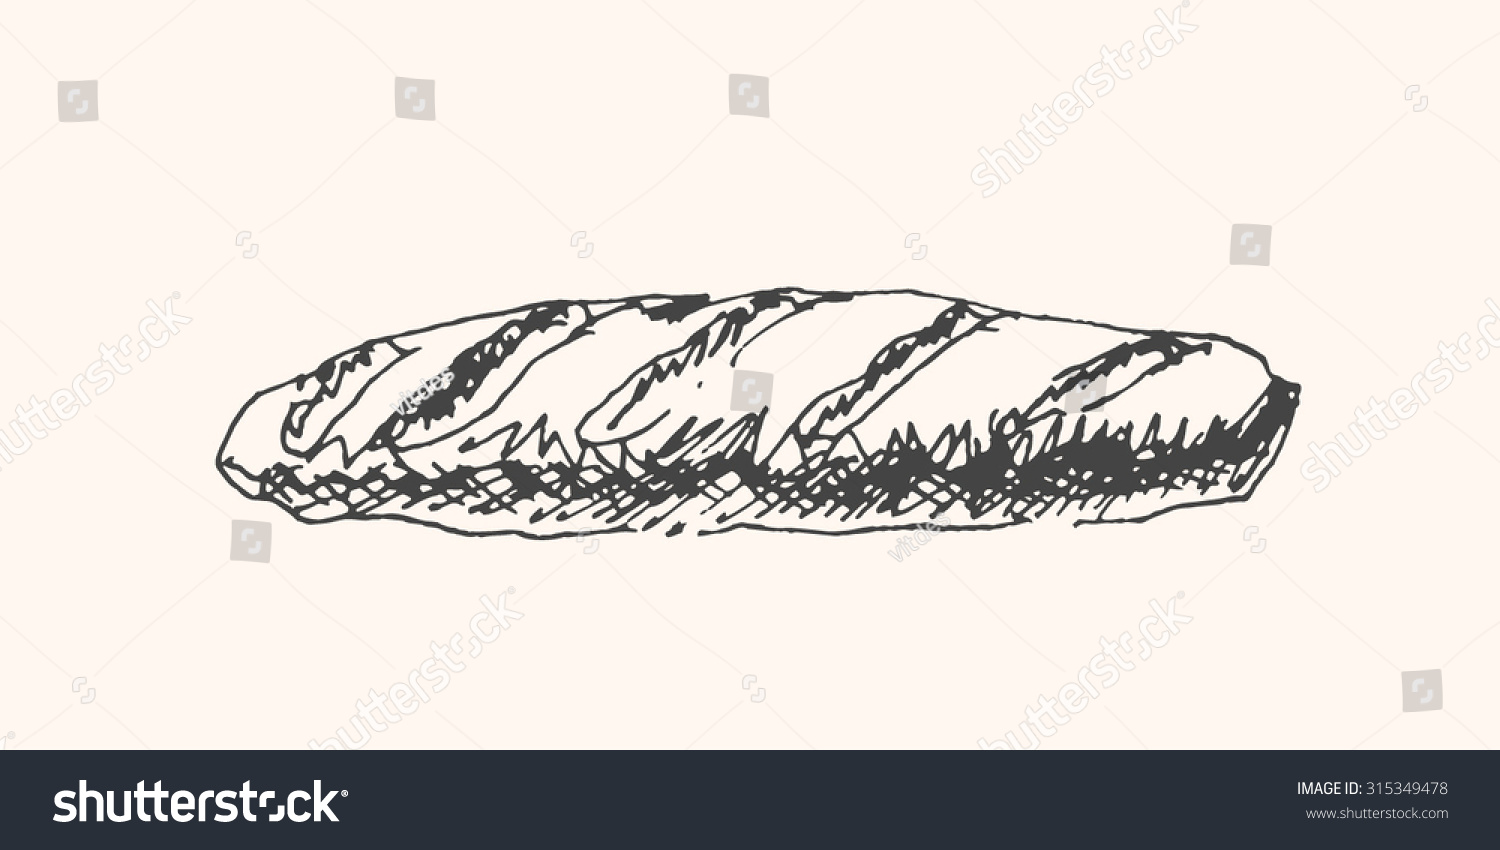 Tasty French Baguette Or Loaf Of Bread Icon In Sketch Hand Drawn Style For